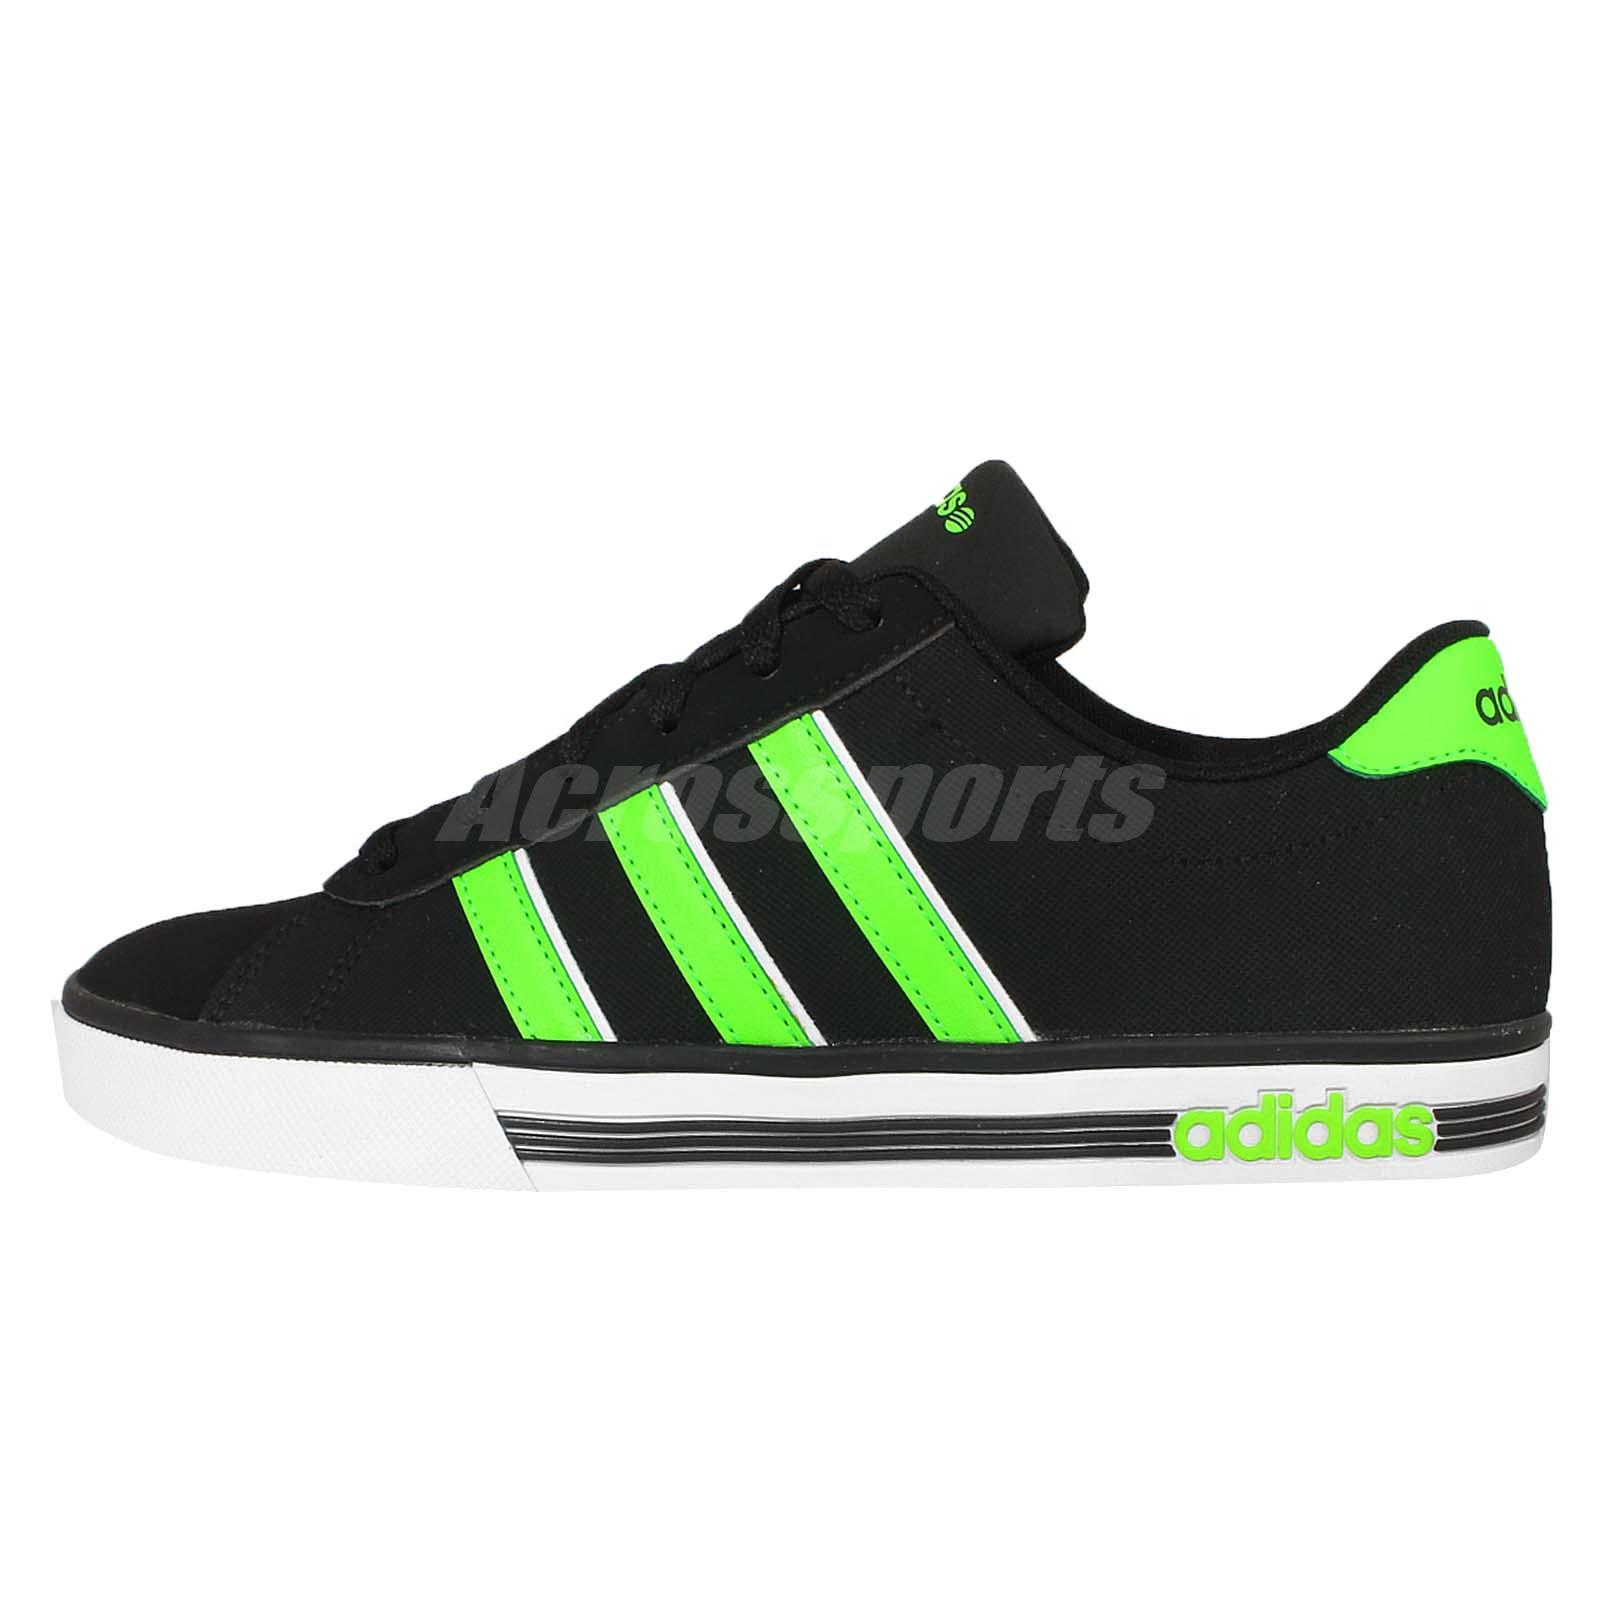 Adidas Neo Label Daily Team Black Green Mens Casual Shoes Sneakers F98348